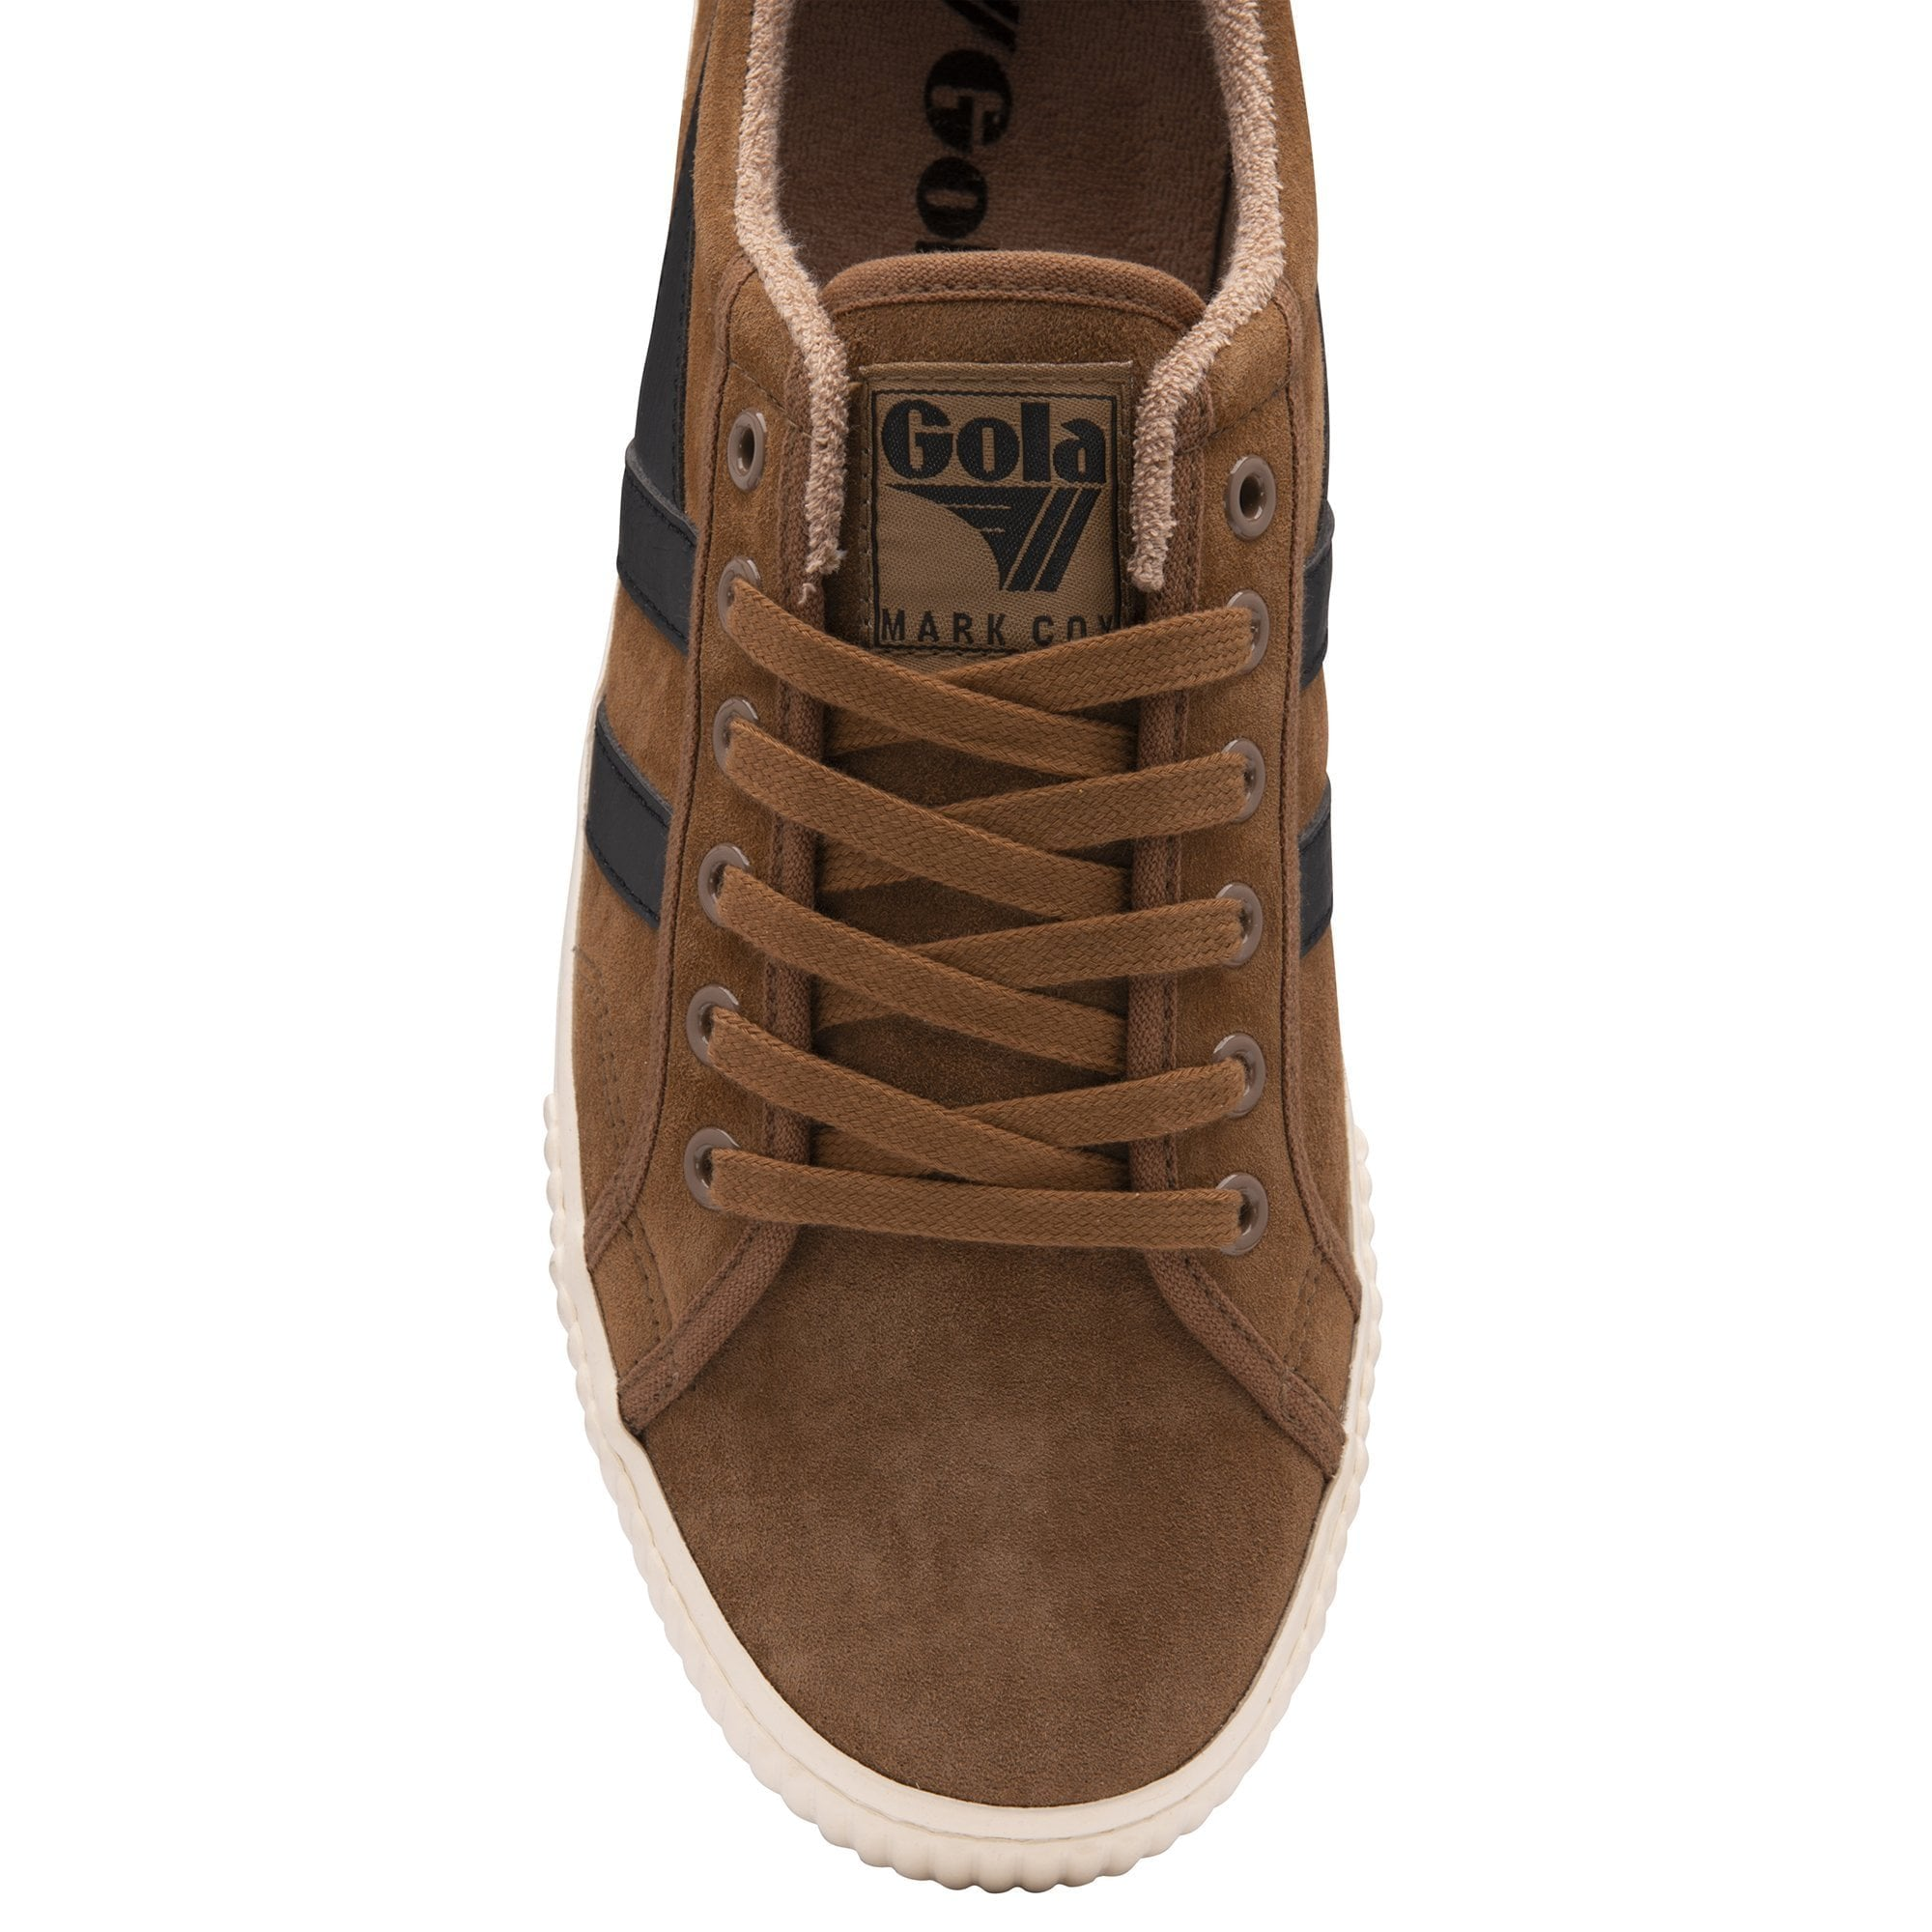 Men's Tennis Mark Cox Suede Sneakers